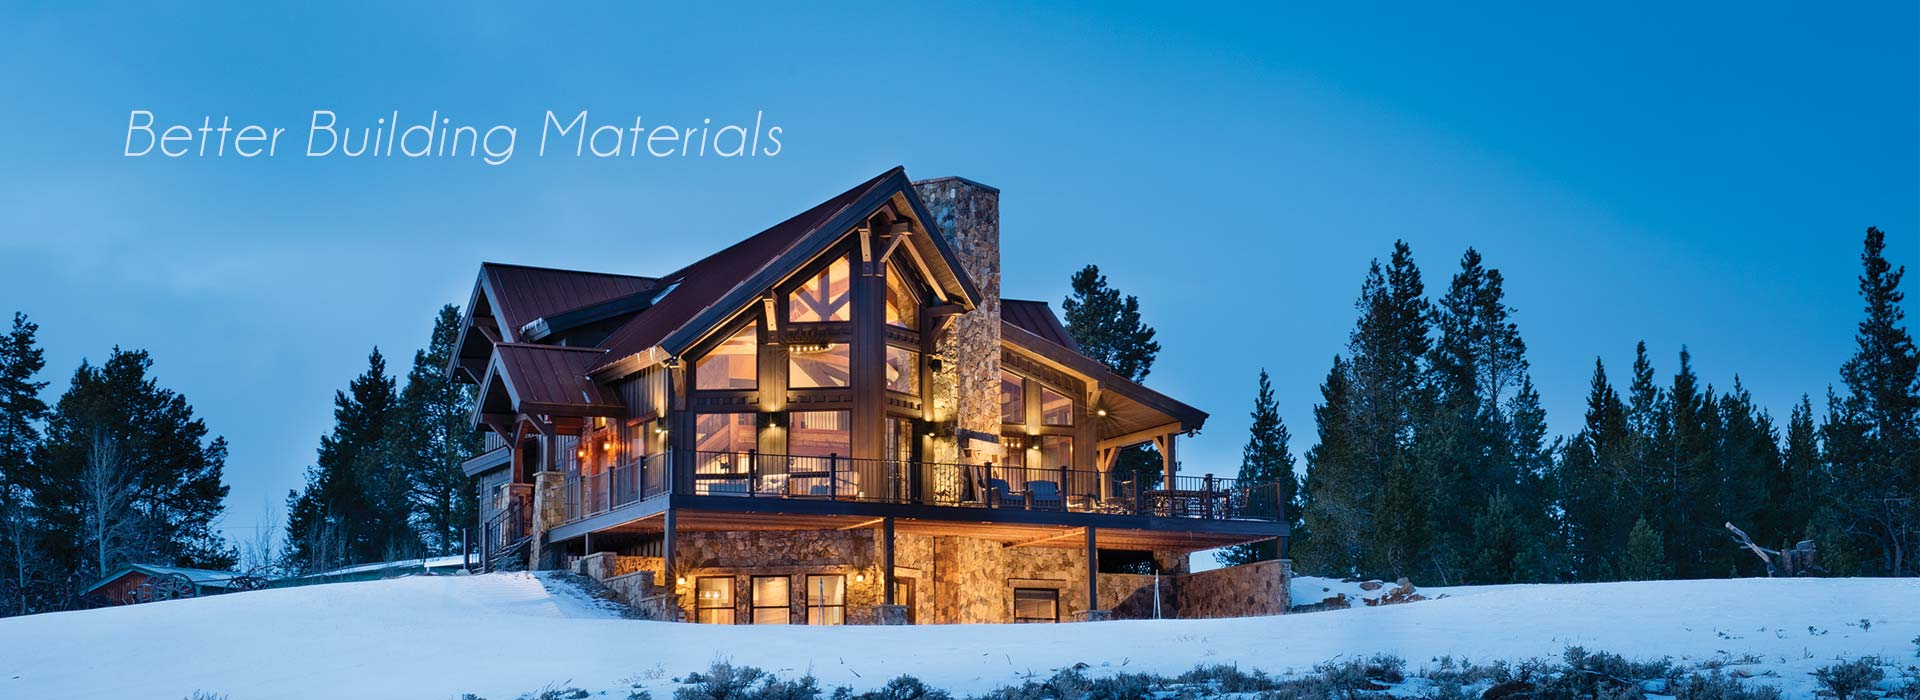 Mountain Timber Frame Home